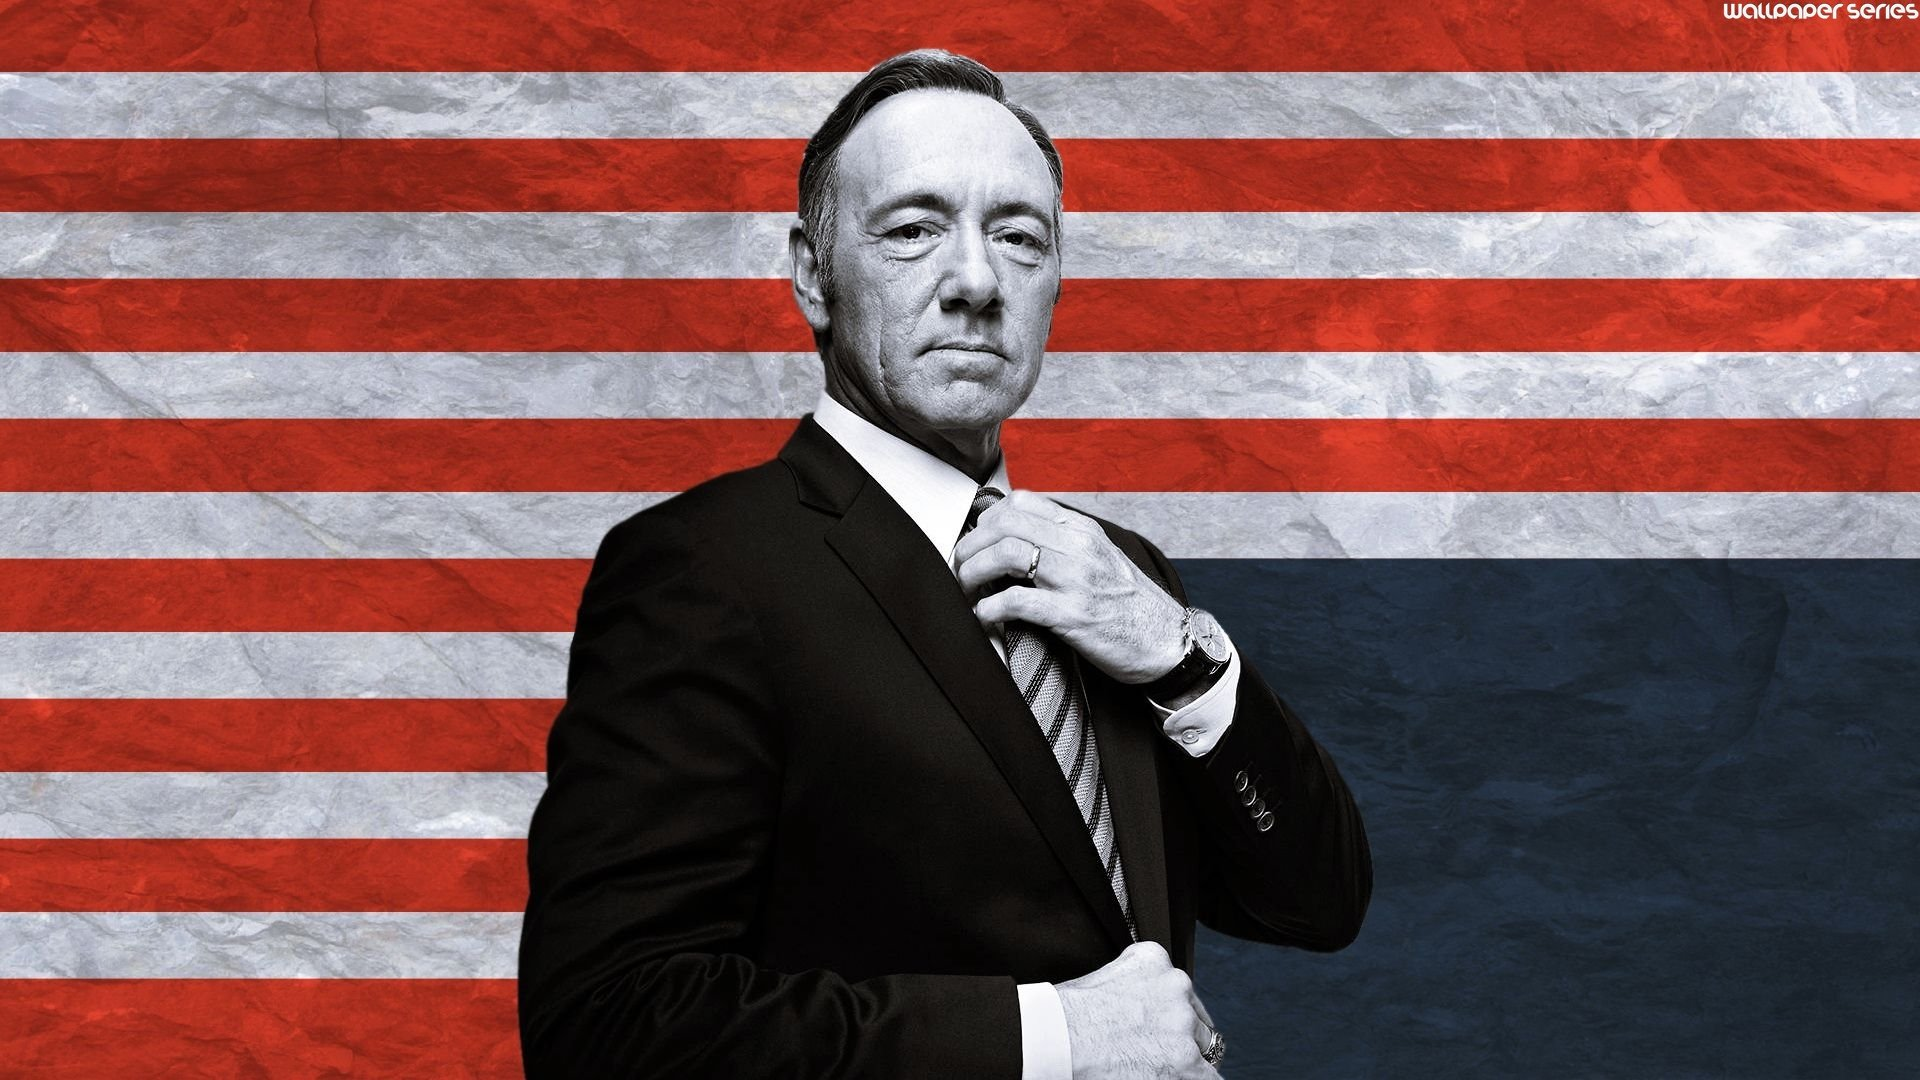 SCRIPT LEAK: HOUSE OF CARDS SEASON 4